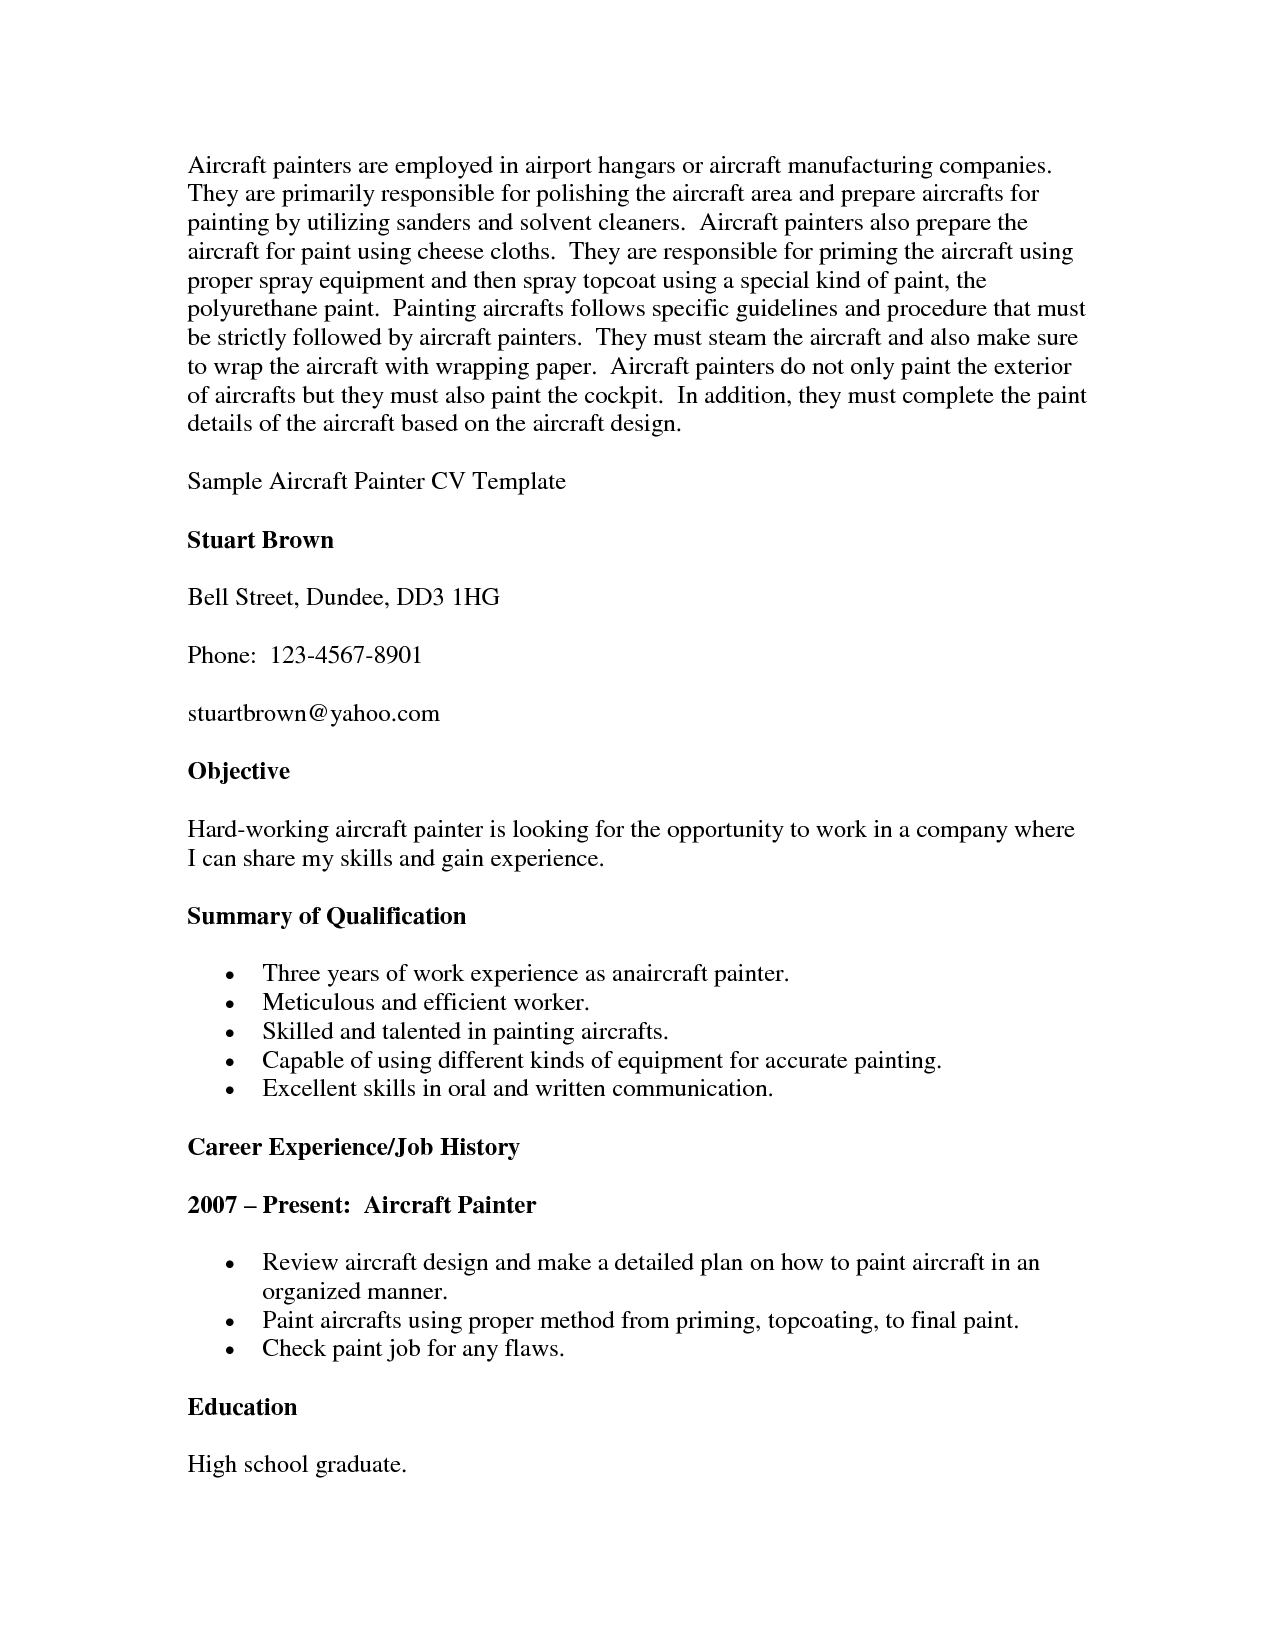 Painters Resume Sample Objective Summary Of Qualifications